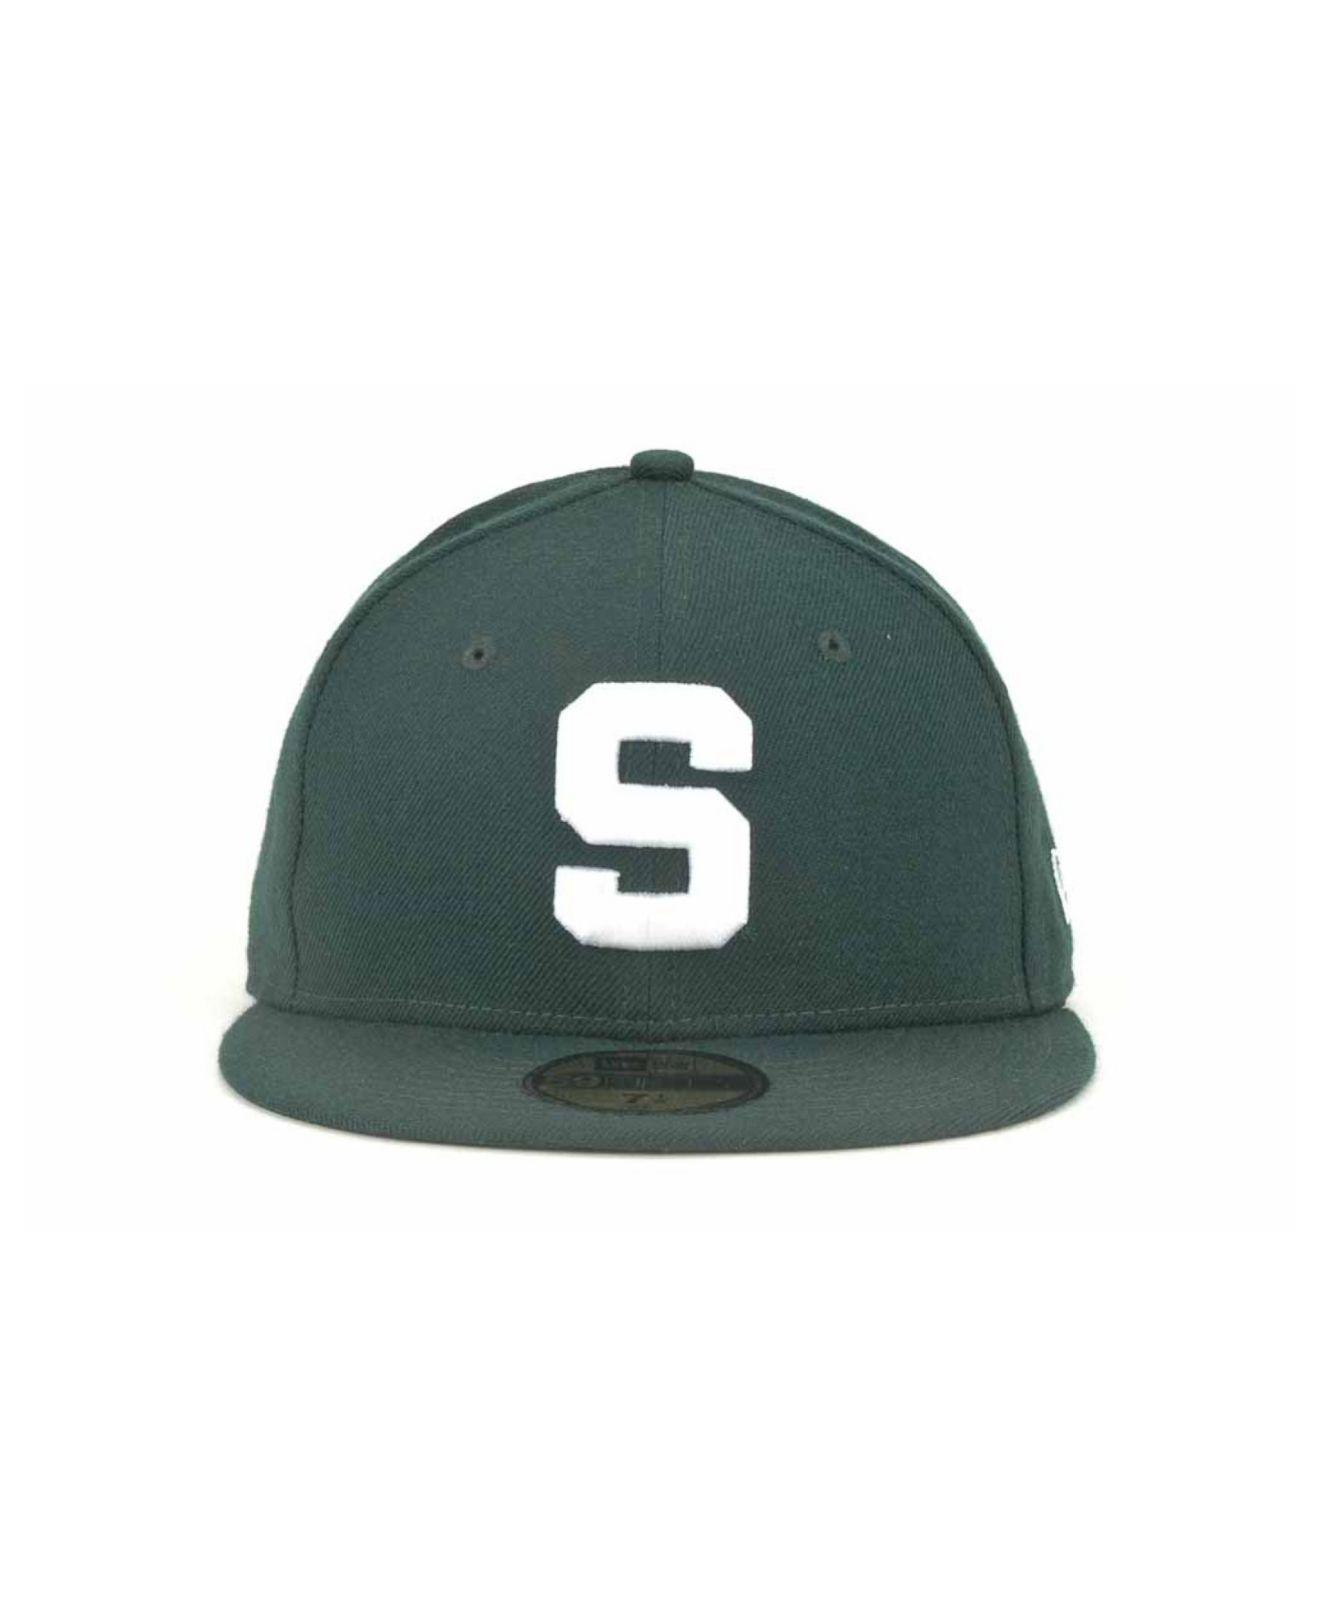 63d2ff360f2 sweden lyst ktz michigan state spartans 59fifty cap in green for men 9a70c  9abbd